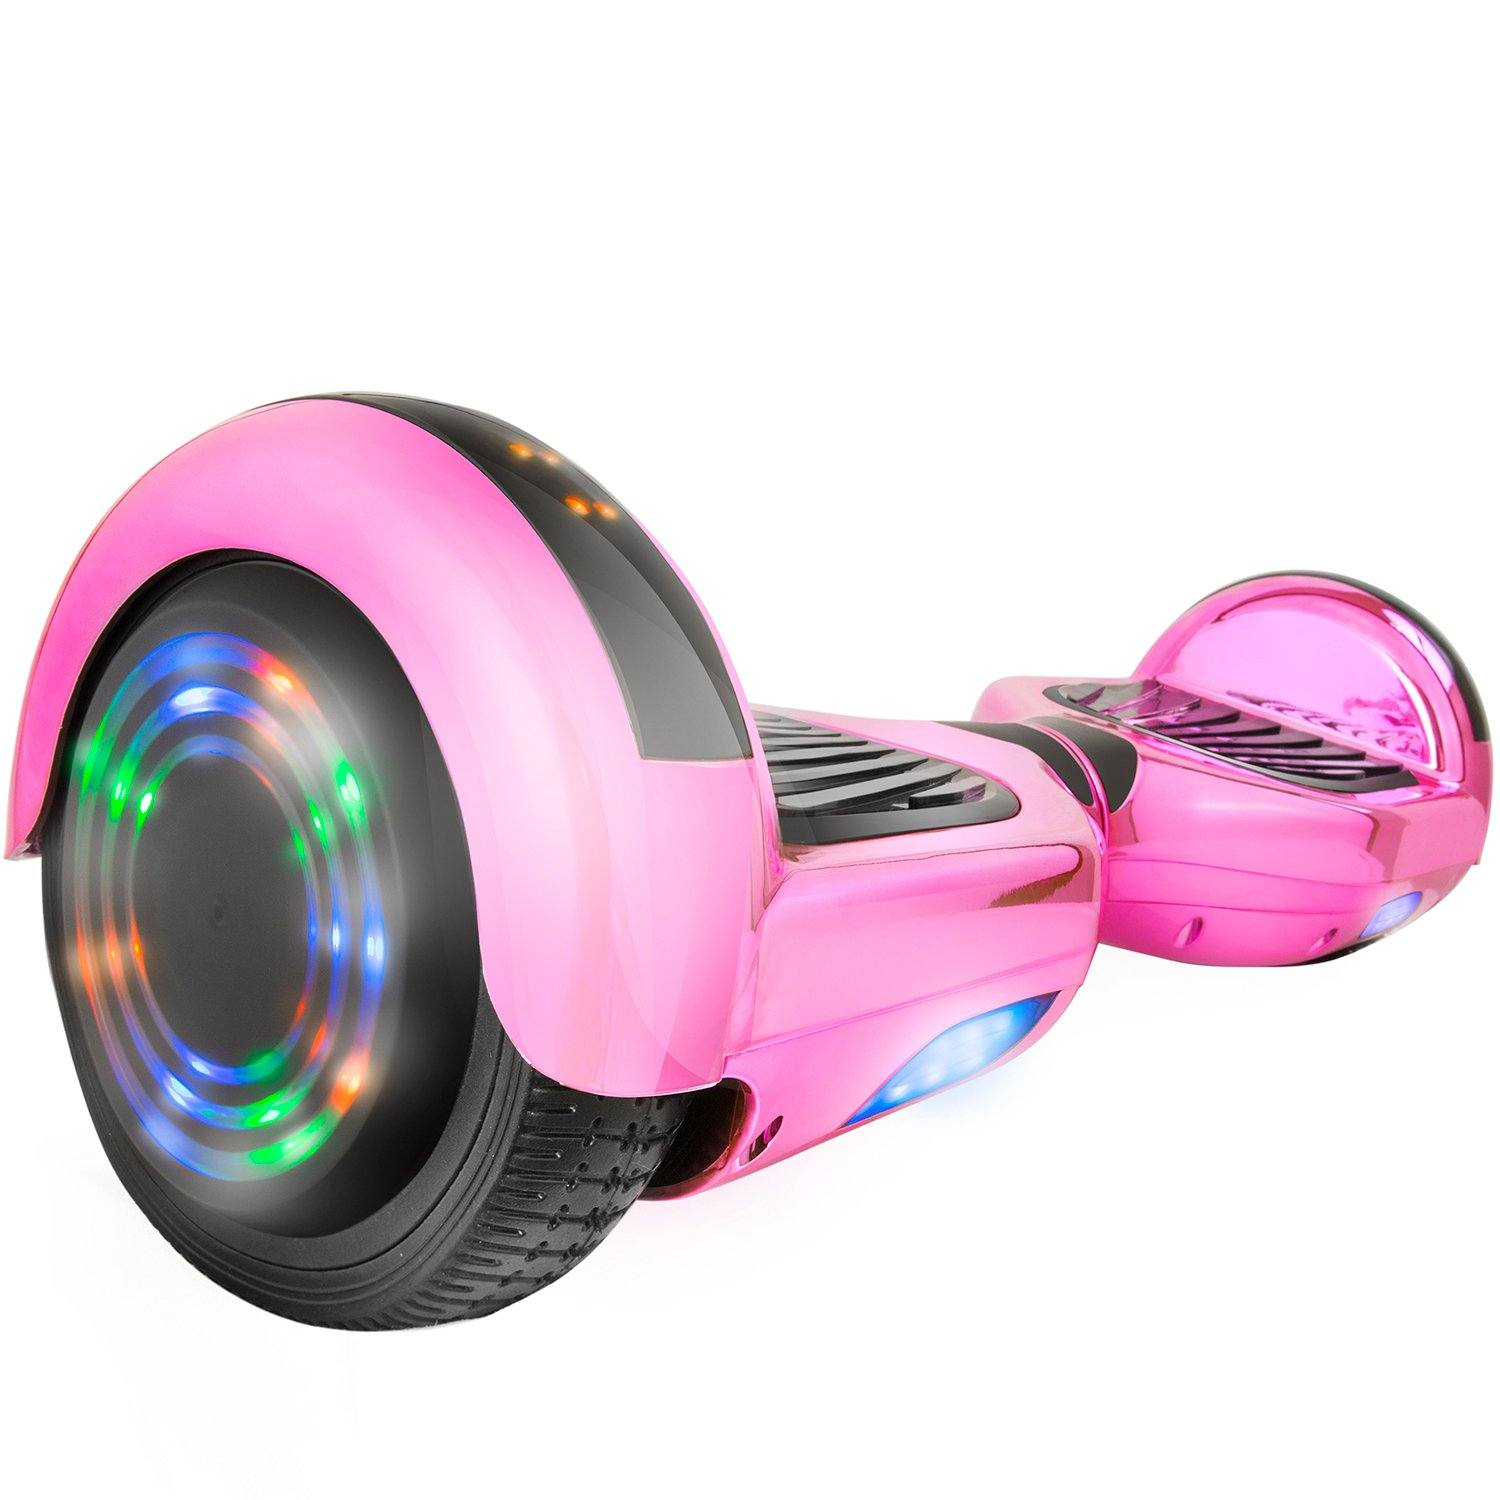 C1 Plus Pink Hoverboard UL2272 certified with Bluetooth Speaker Free Shipping. - HoverBoard4sale